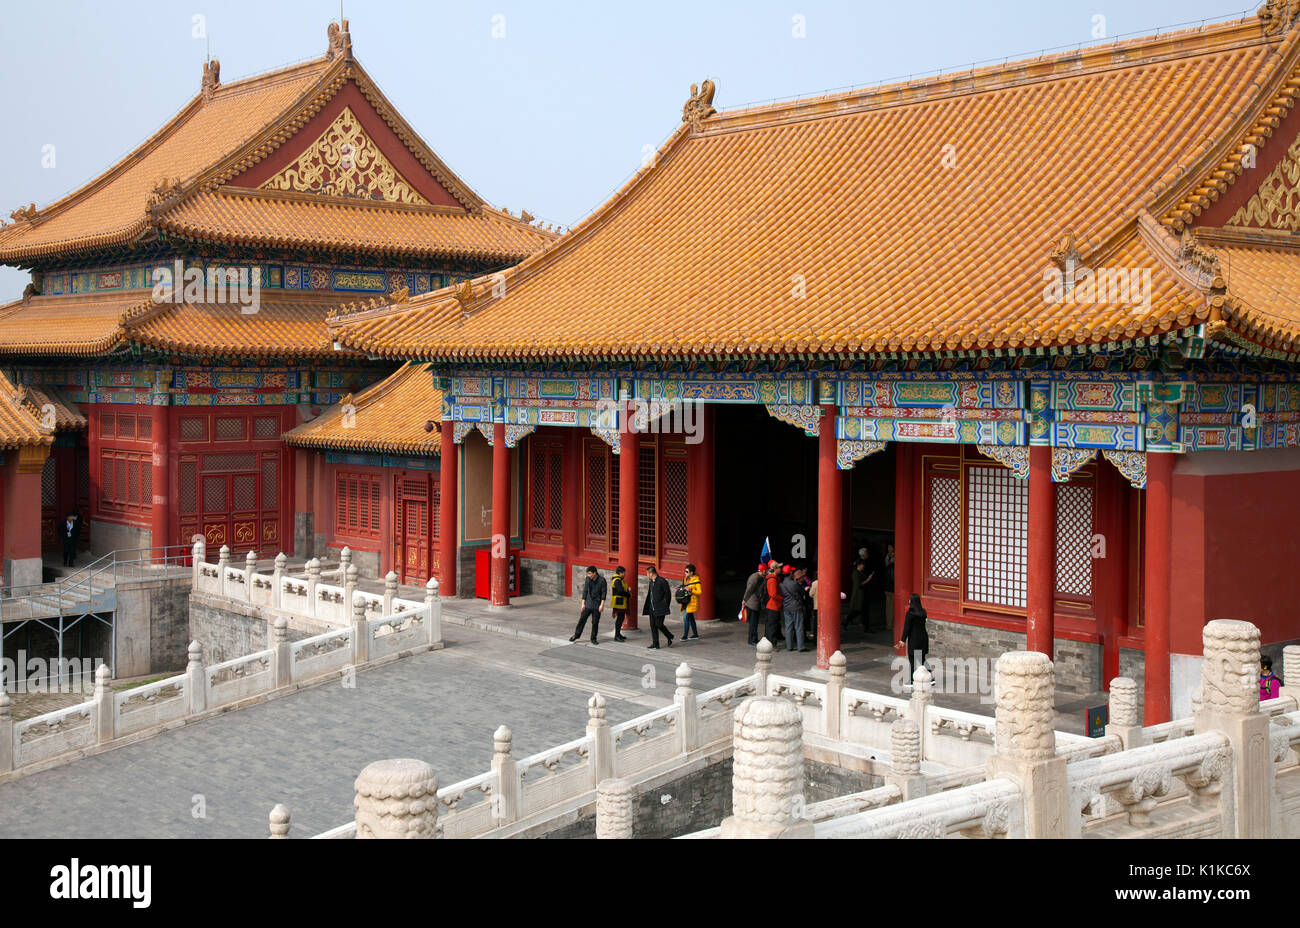 Architectural detail, Forbidden City, Beijing, China.  Tentatively identified as the Hall of Mental Cultivation and former quarters of the monarch's c - Stock Image